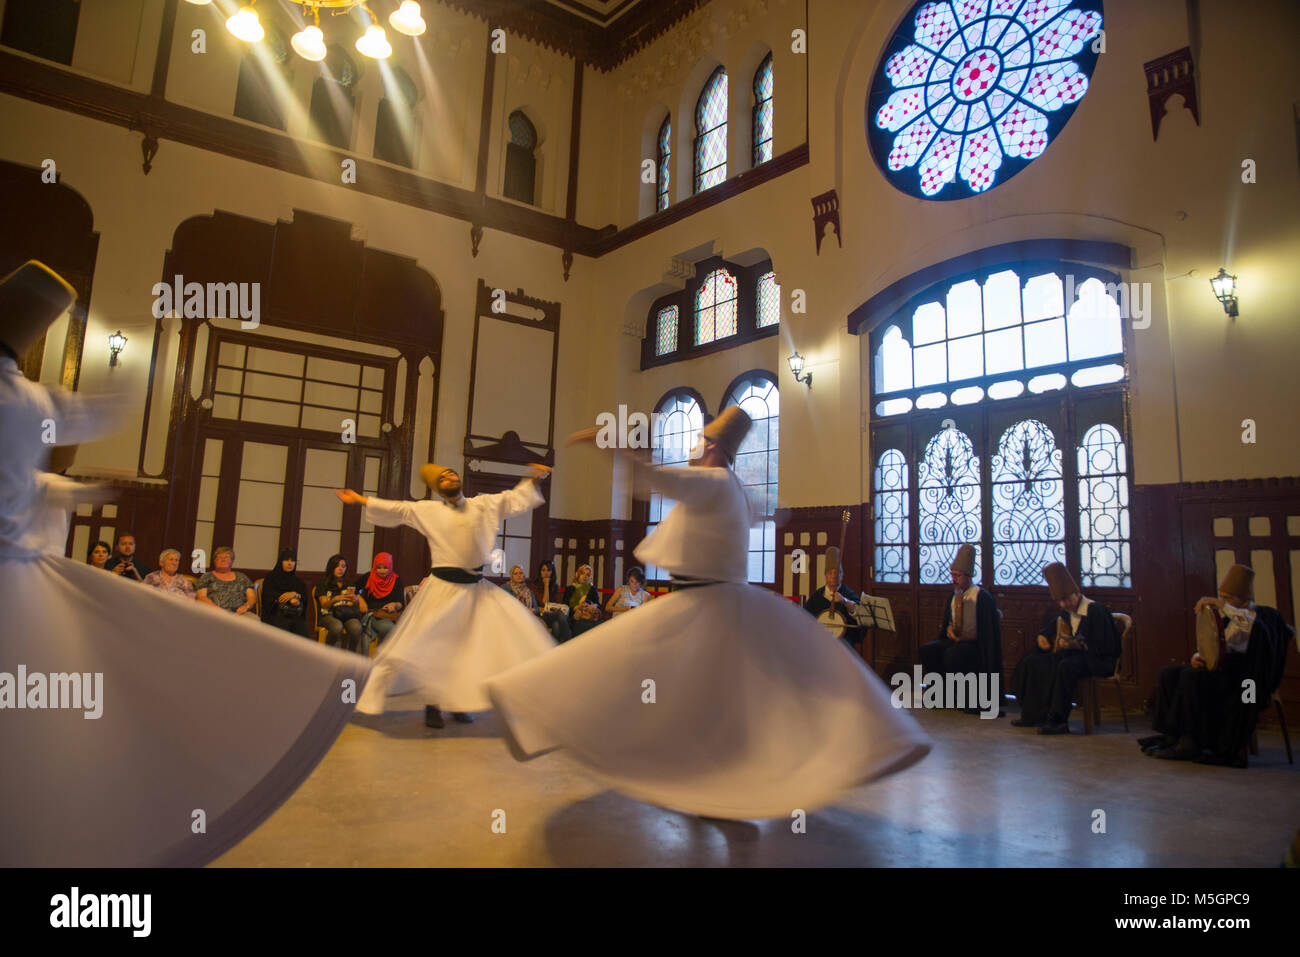 Whirling Dervish, event hall, Sirkeci train station - Stock Image